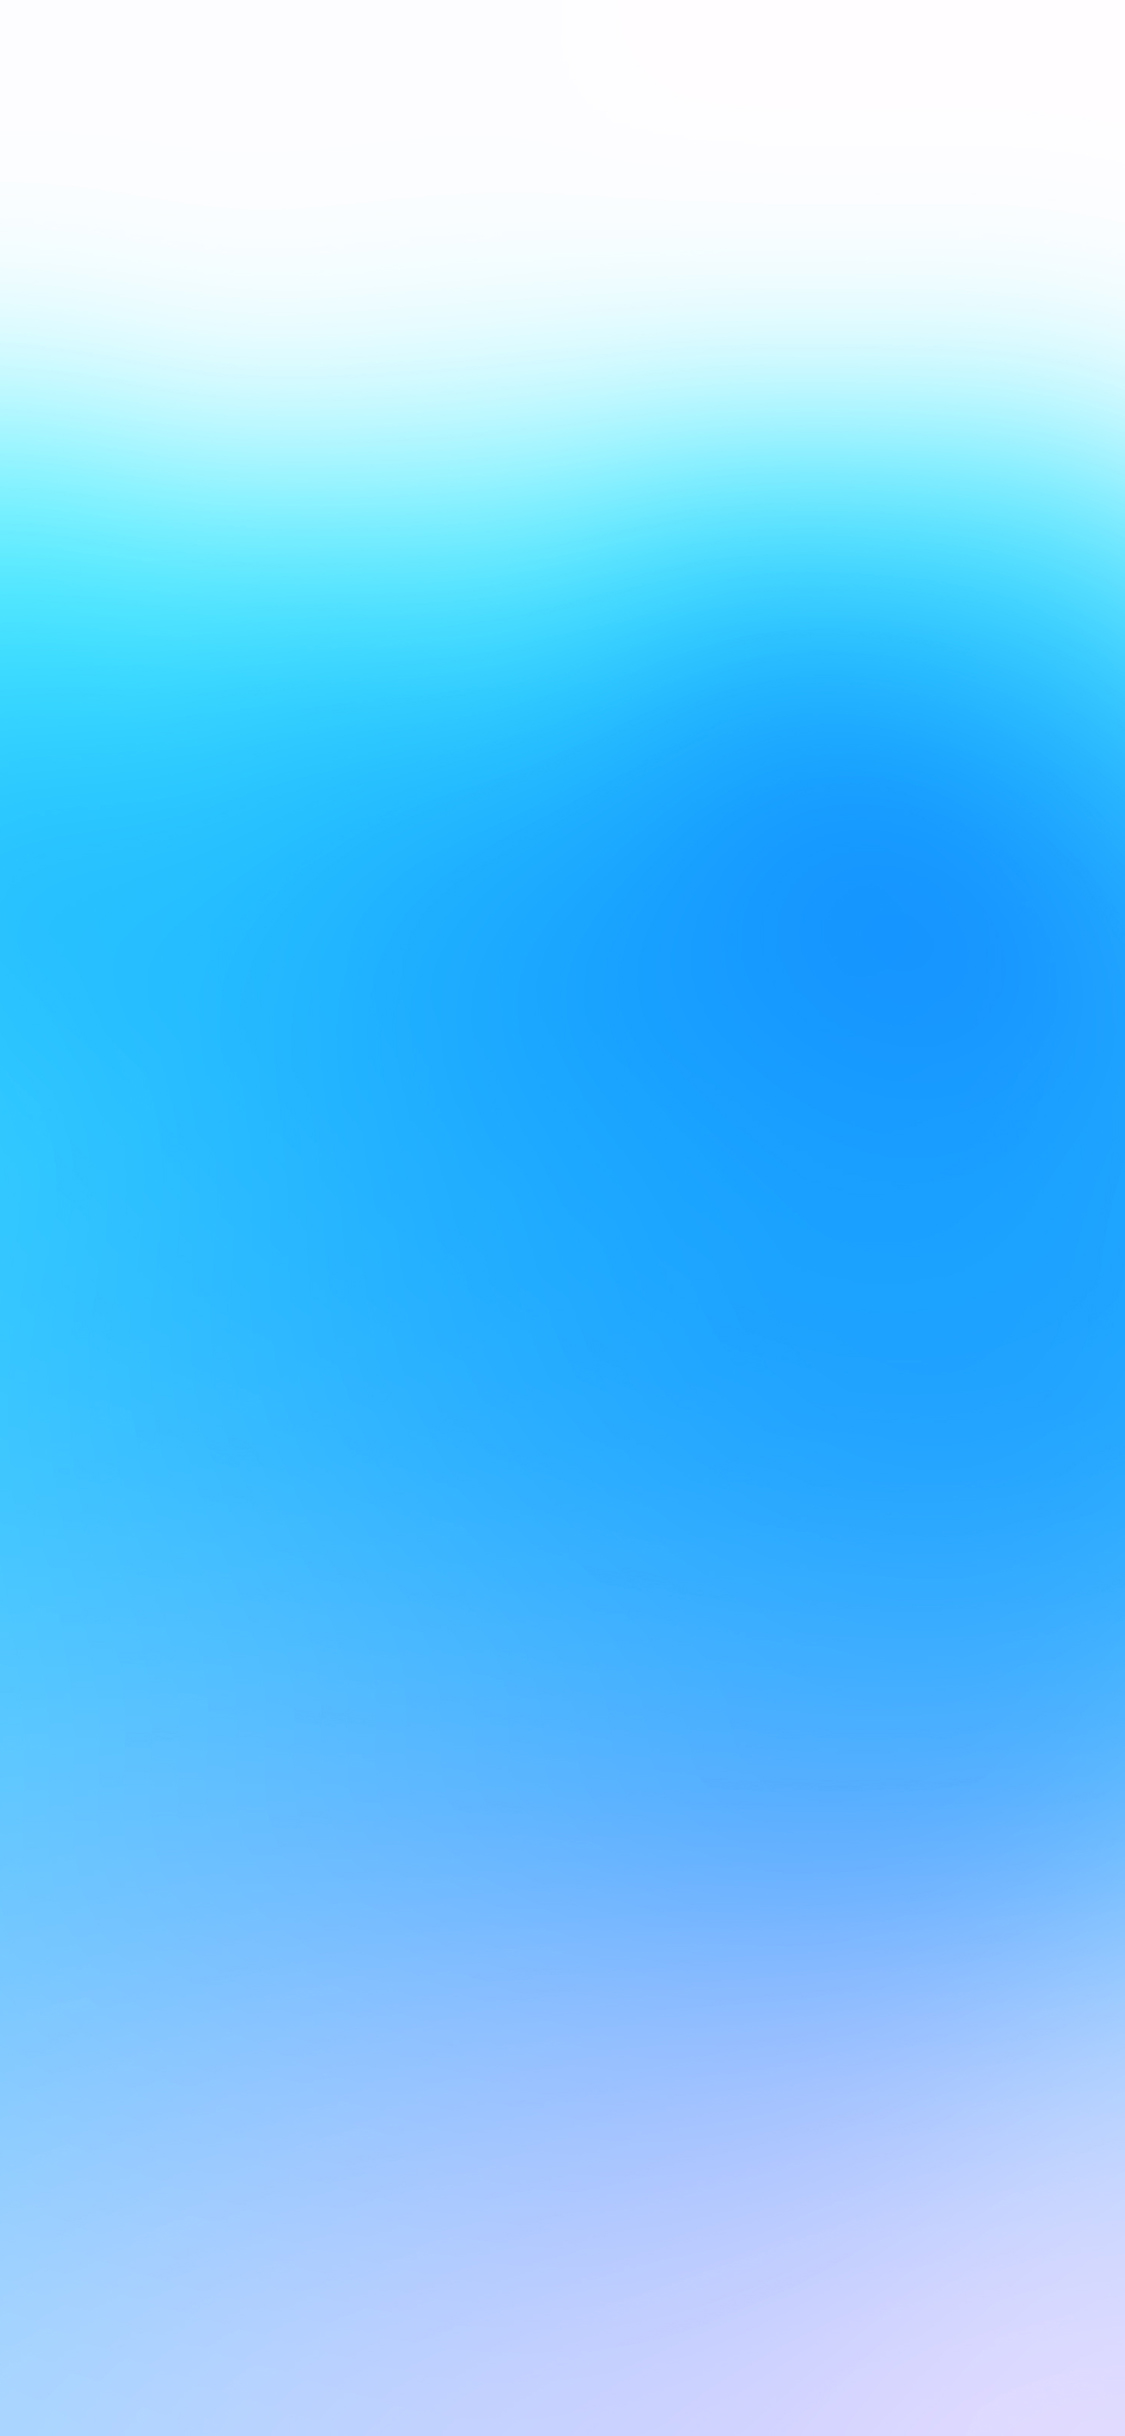 iPhoneXpapers.com-Apple-iPhone-wallpaper-sd61-december-sky-free-gradation-blur